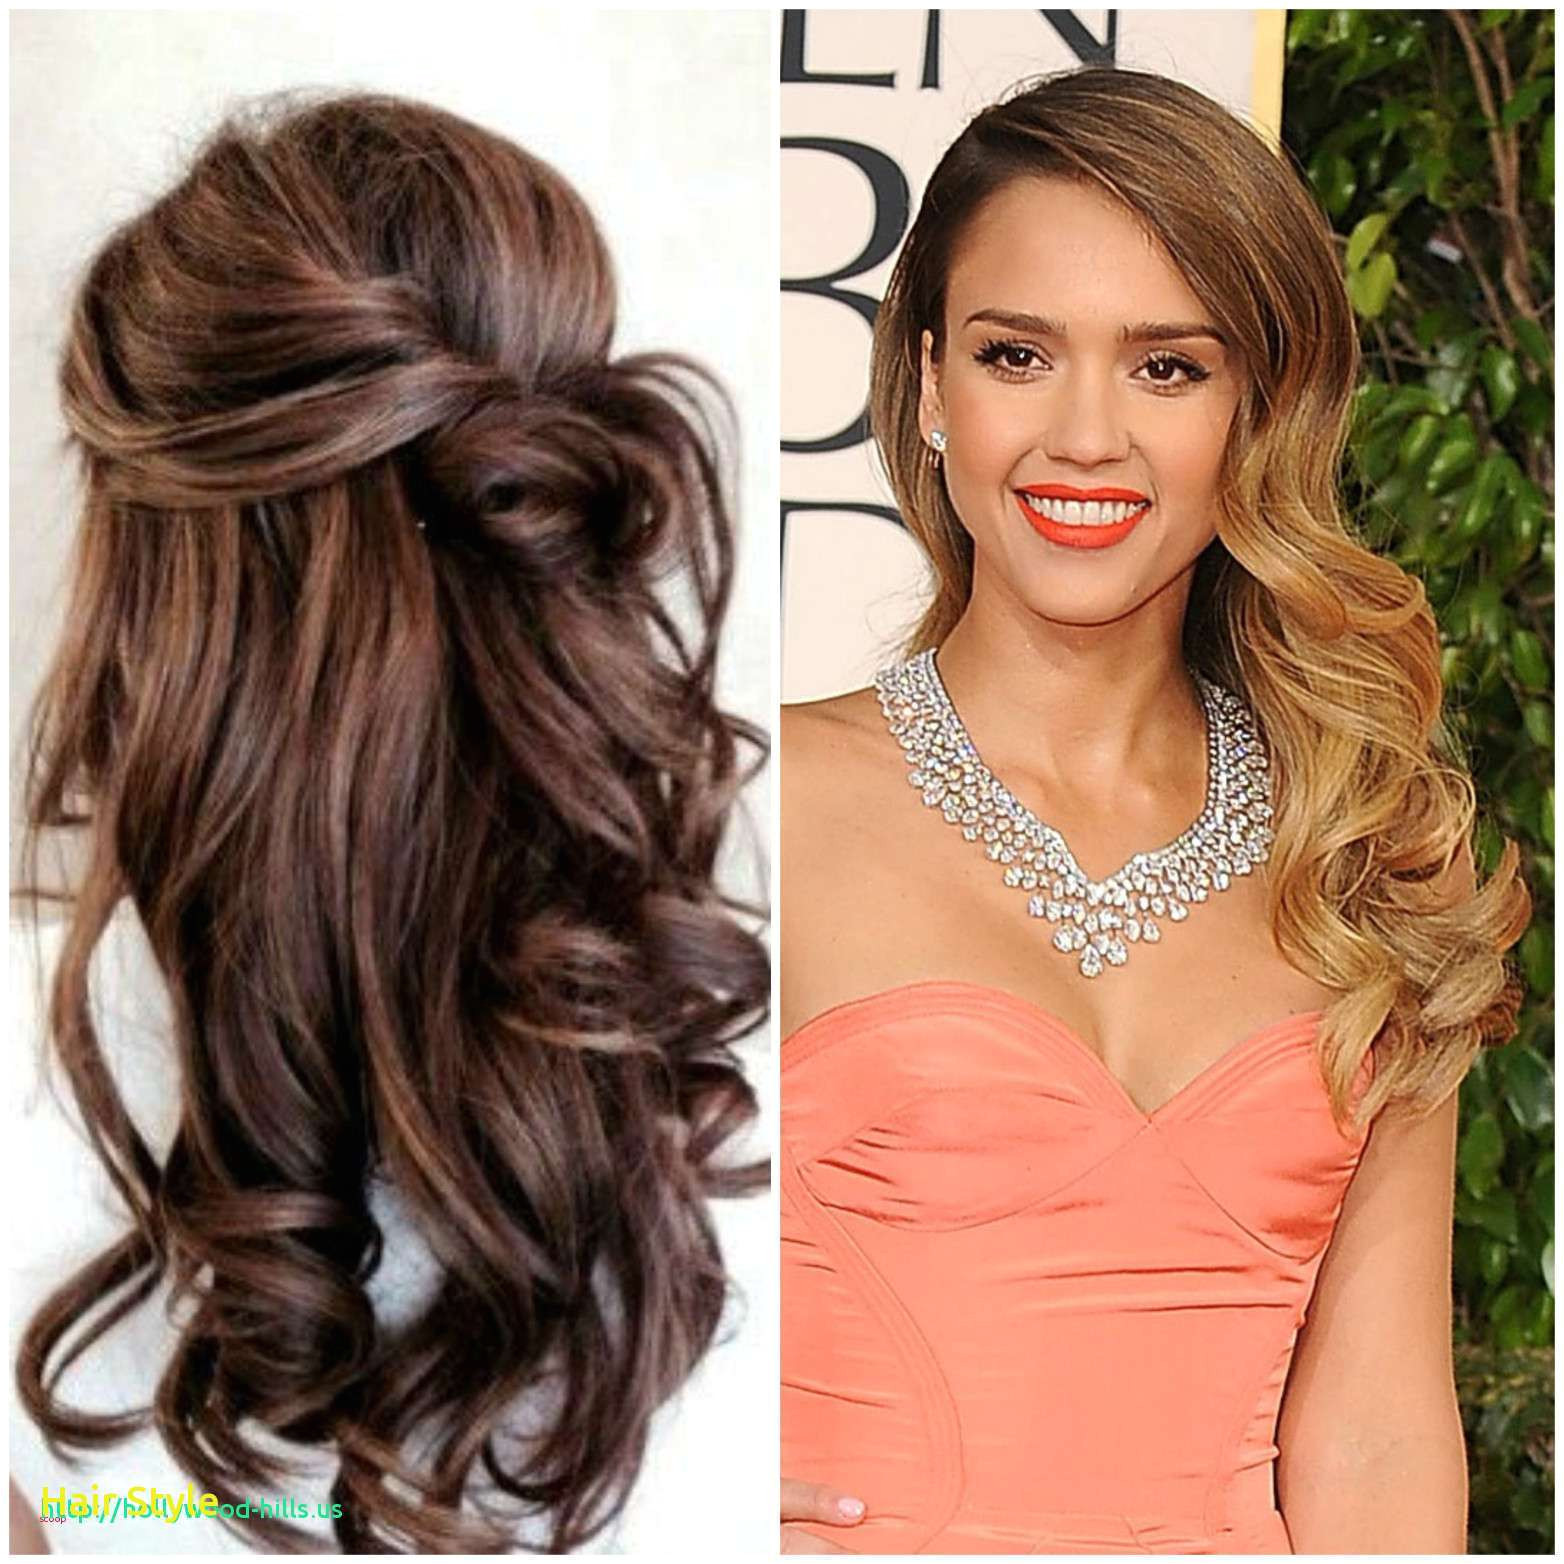 hair coloring inspirational using amusing inspirational hairstyles for long hair 2015 luxury i pinimg 1200x 0d